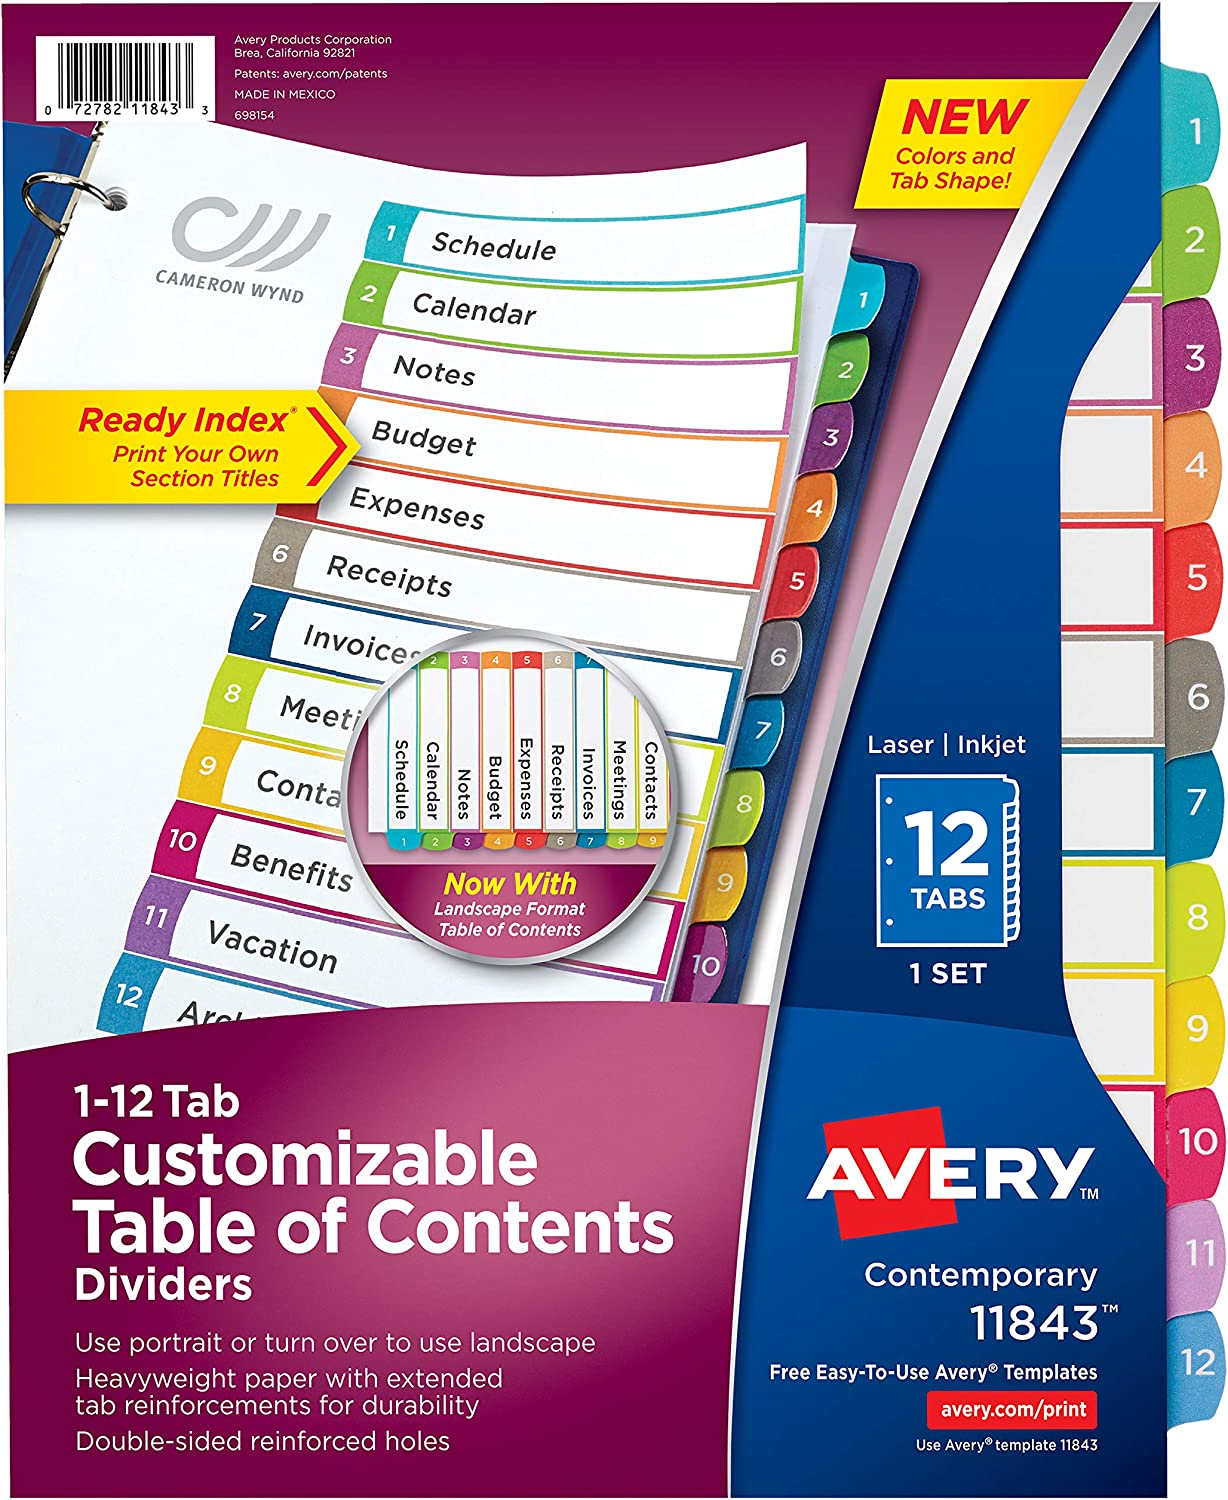 Avery 12 Tab Dividers for 3 Ring Binders, Customizable Table of Contents, Multicolor Tabs, 1 Set (11843) : Office Products